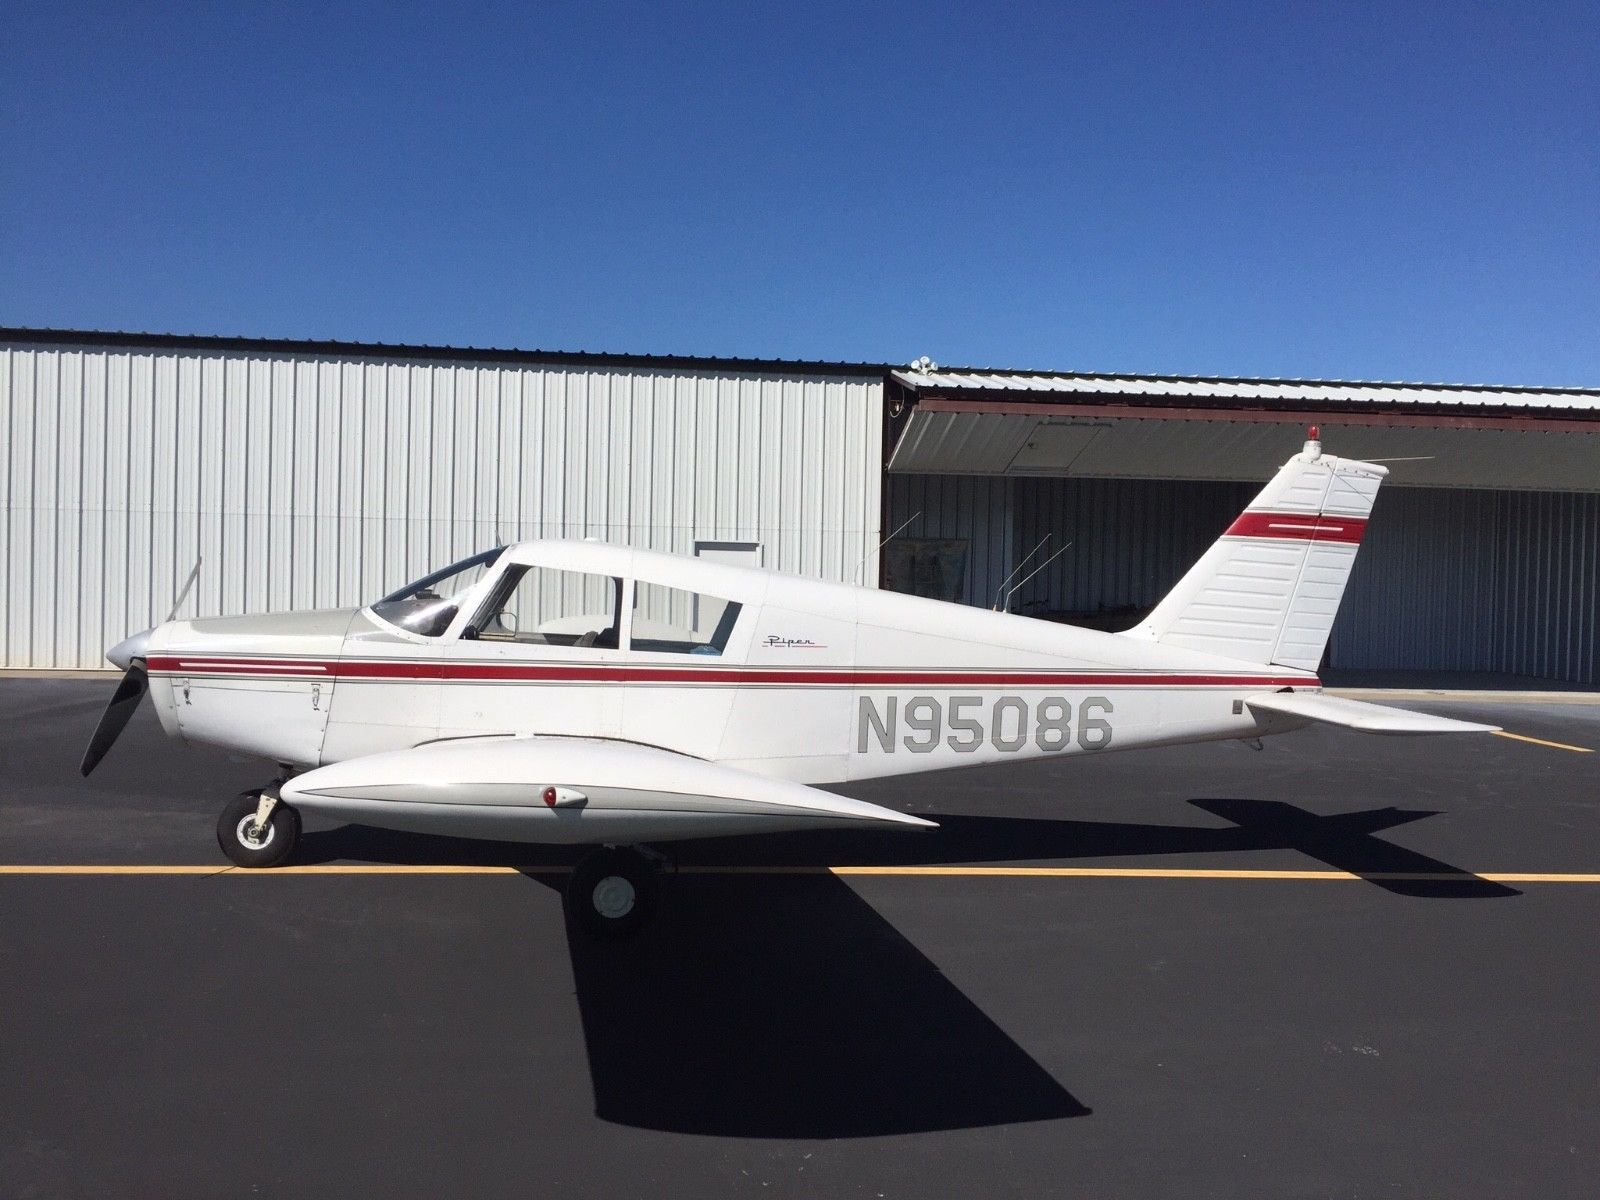 low time 1969 Piper Cherokee 140B aircraft for sale